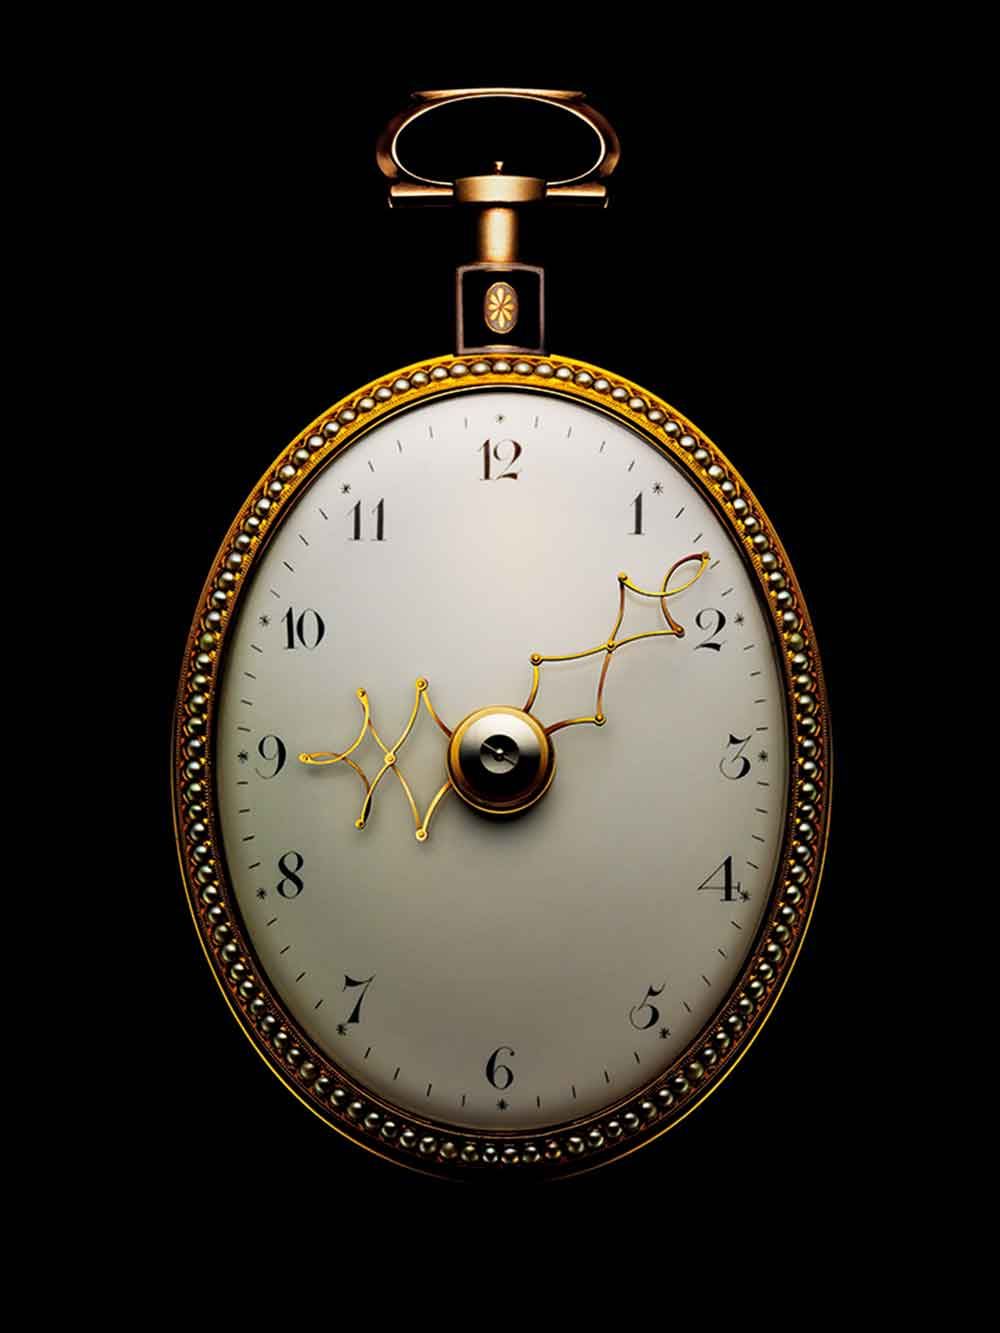 Pantographic pocket watch by Stedman & Vardon, London, about 1790